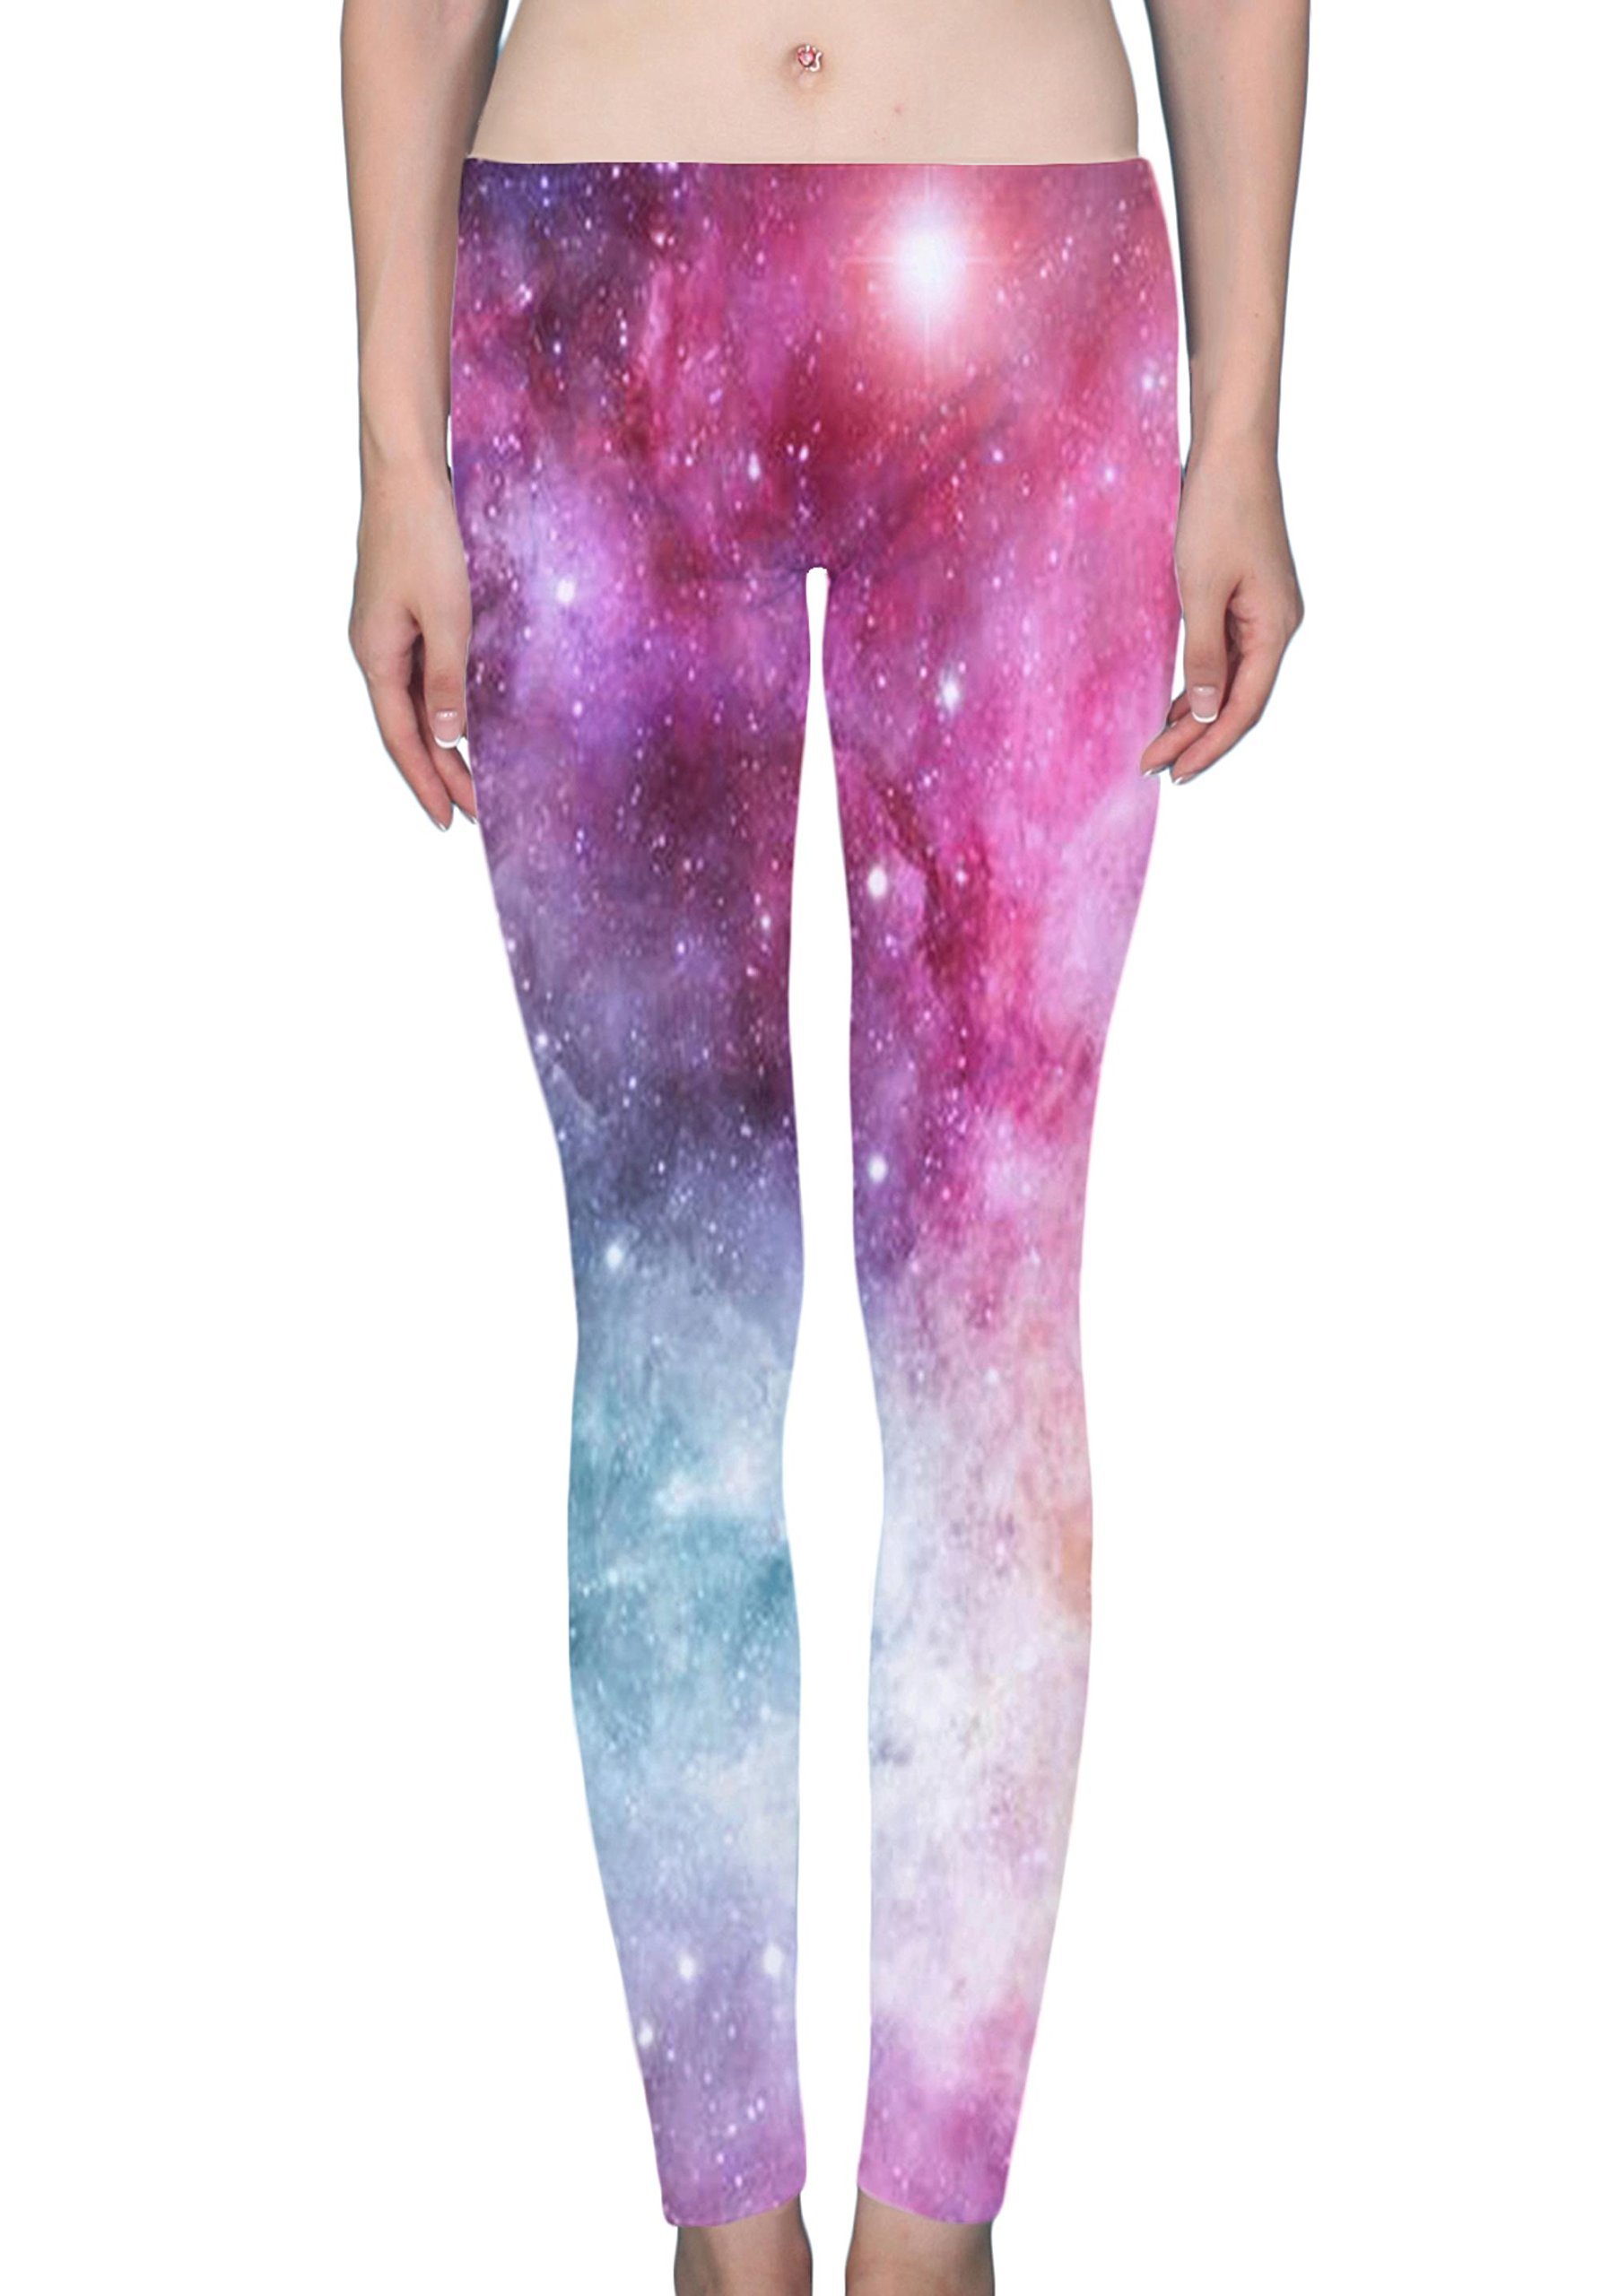 Hualing Galaxies Uuniverse Star Women's Printed Leggings Soft Stretchy Workout Yoga Pants Fashion Sports Pants by Hualing (Image #1)